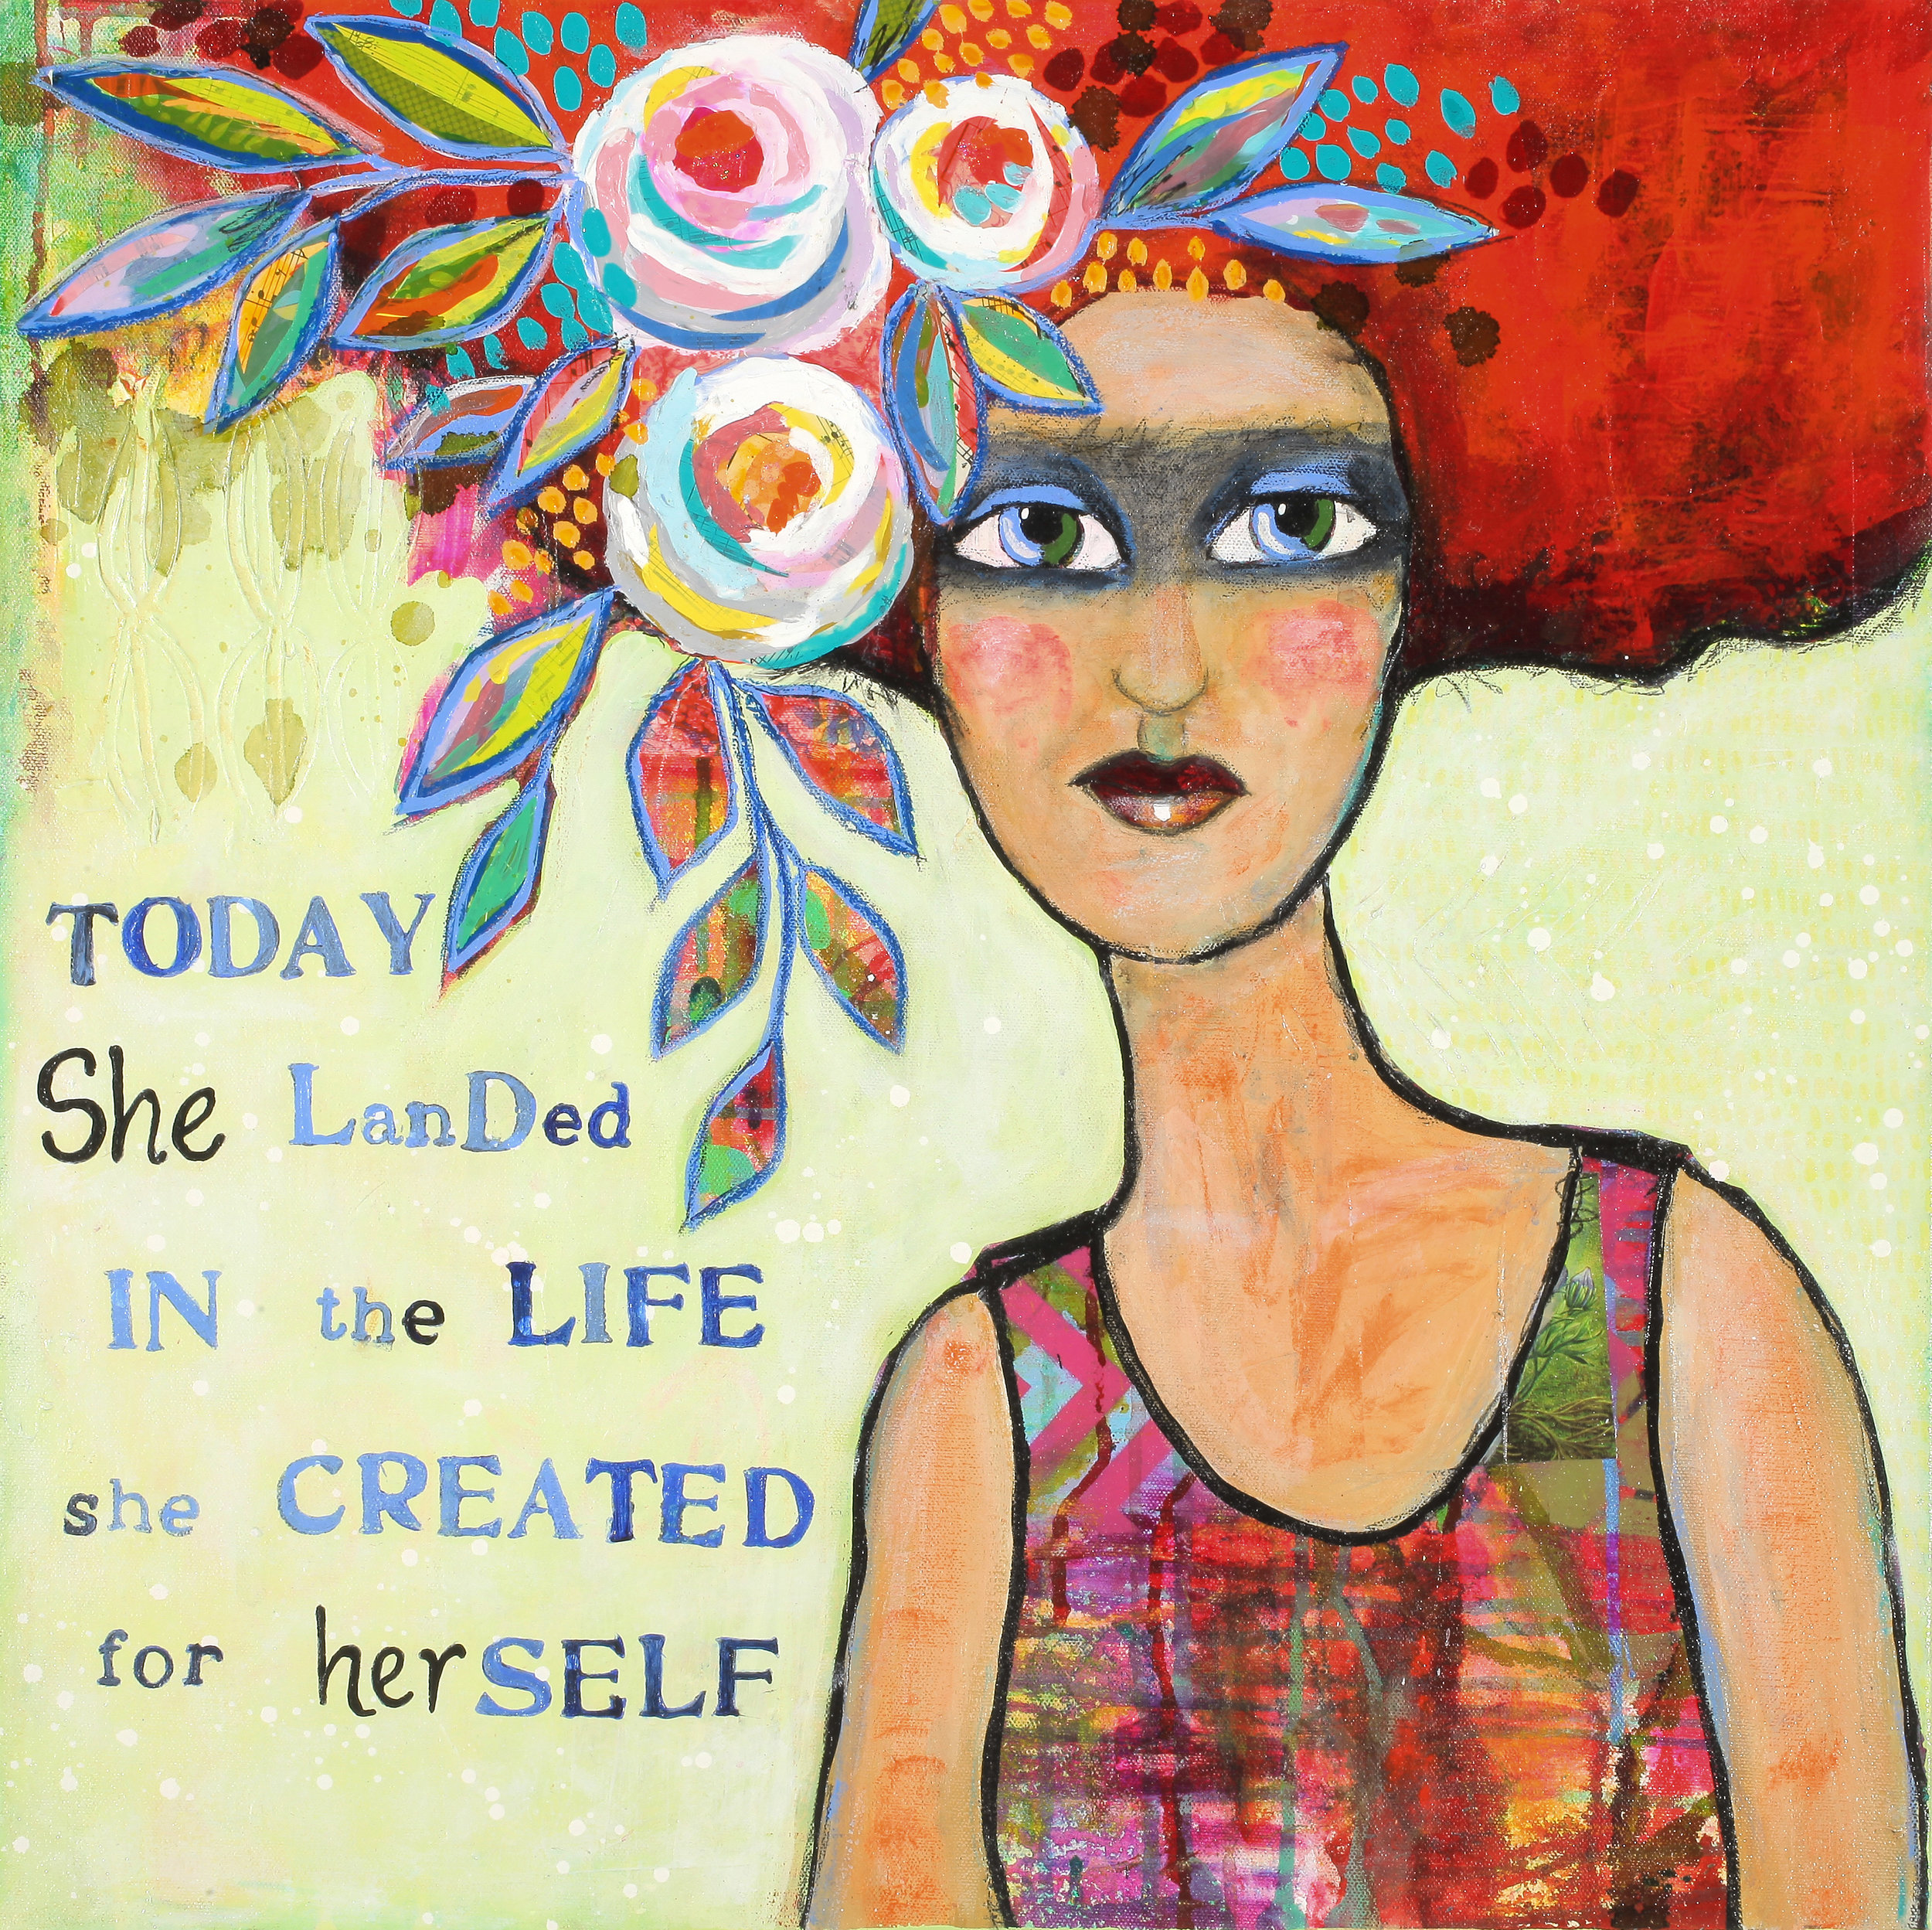 Today She Landed In The Life She Created For Herself